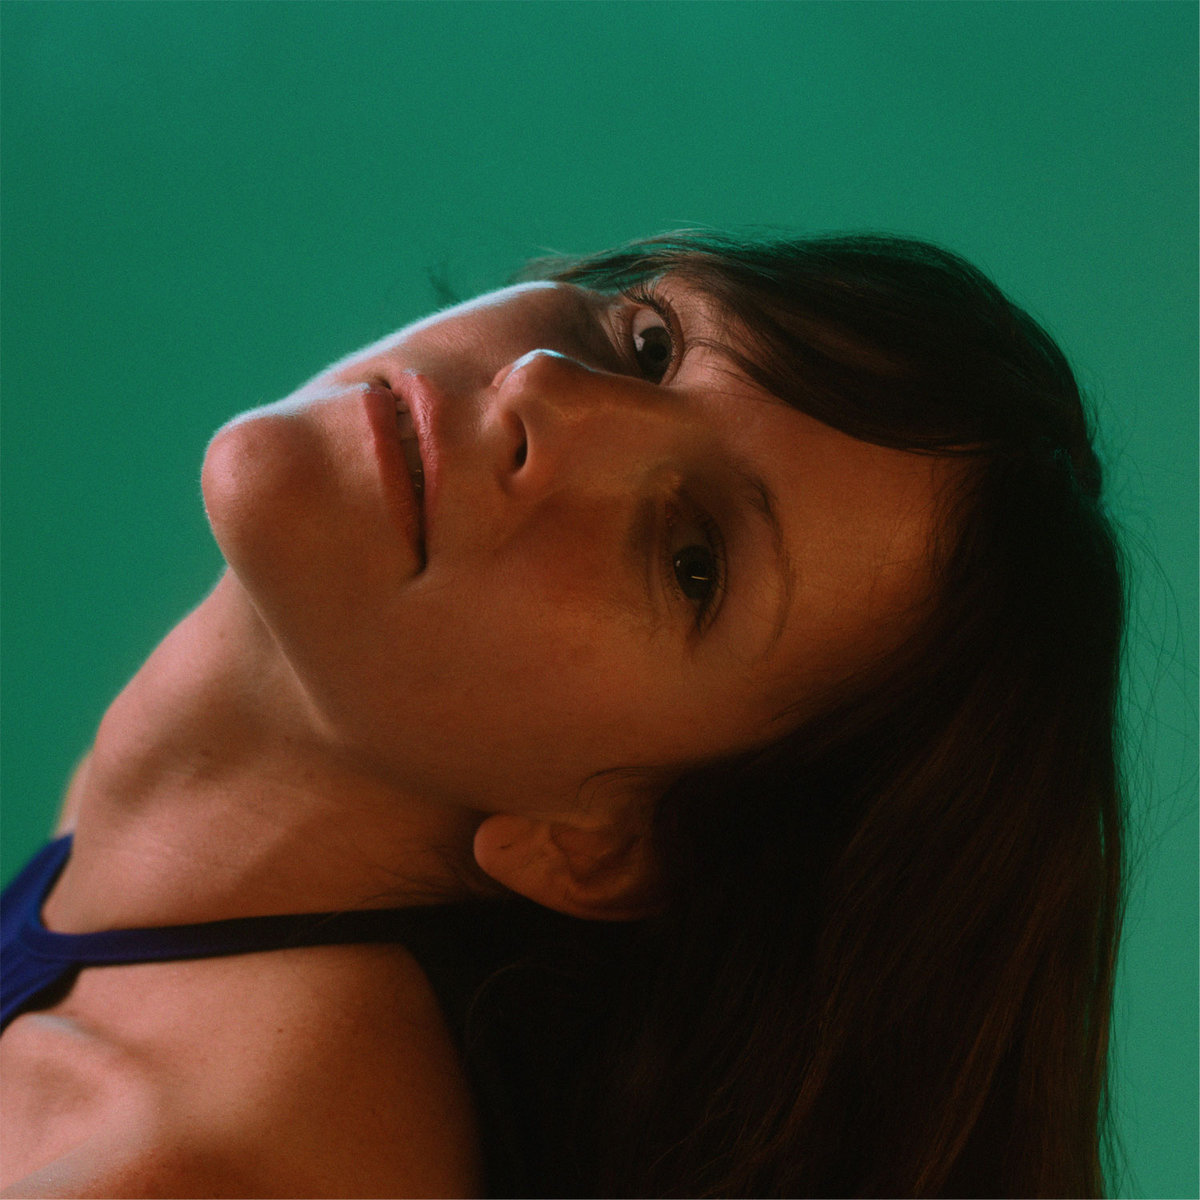 New music from composer Kaitlyn Aurelia Smith.